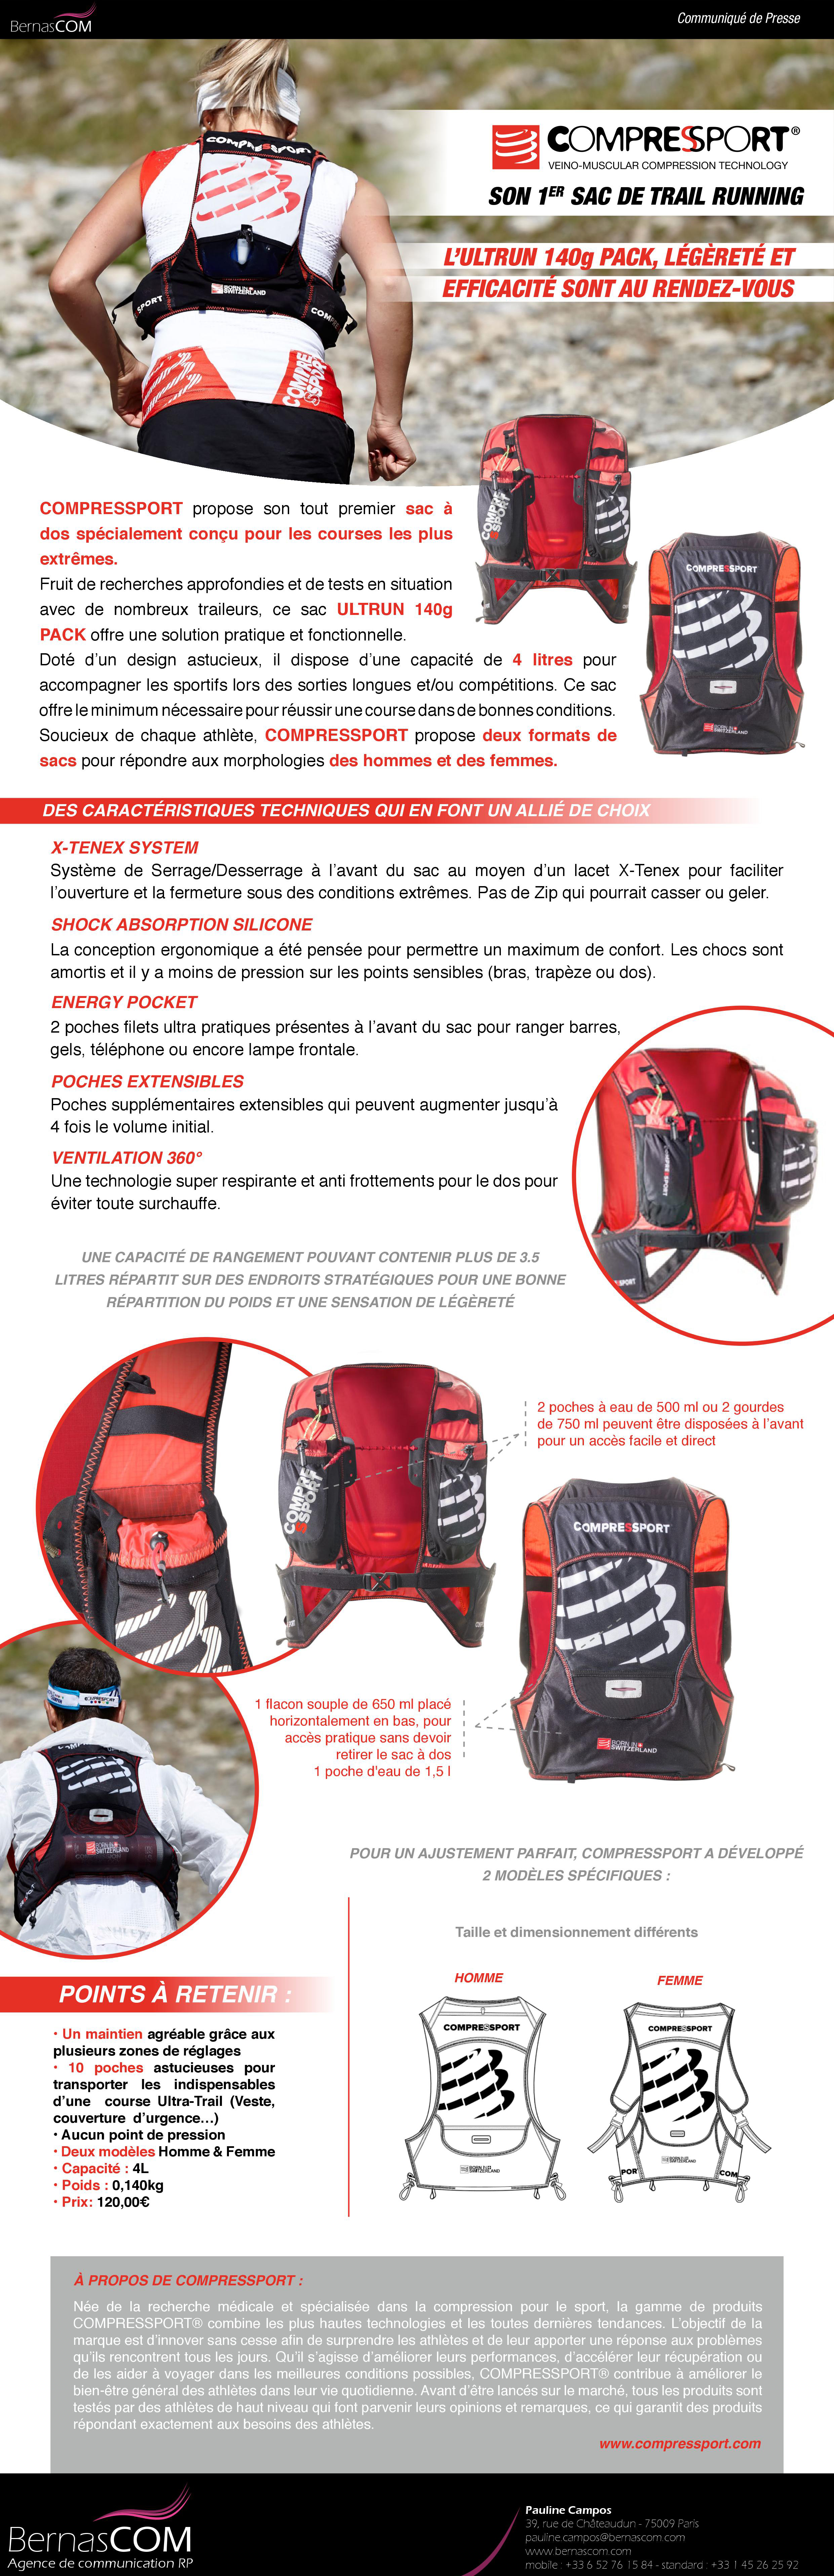 Compressport sac